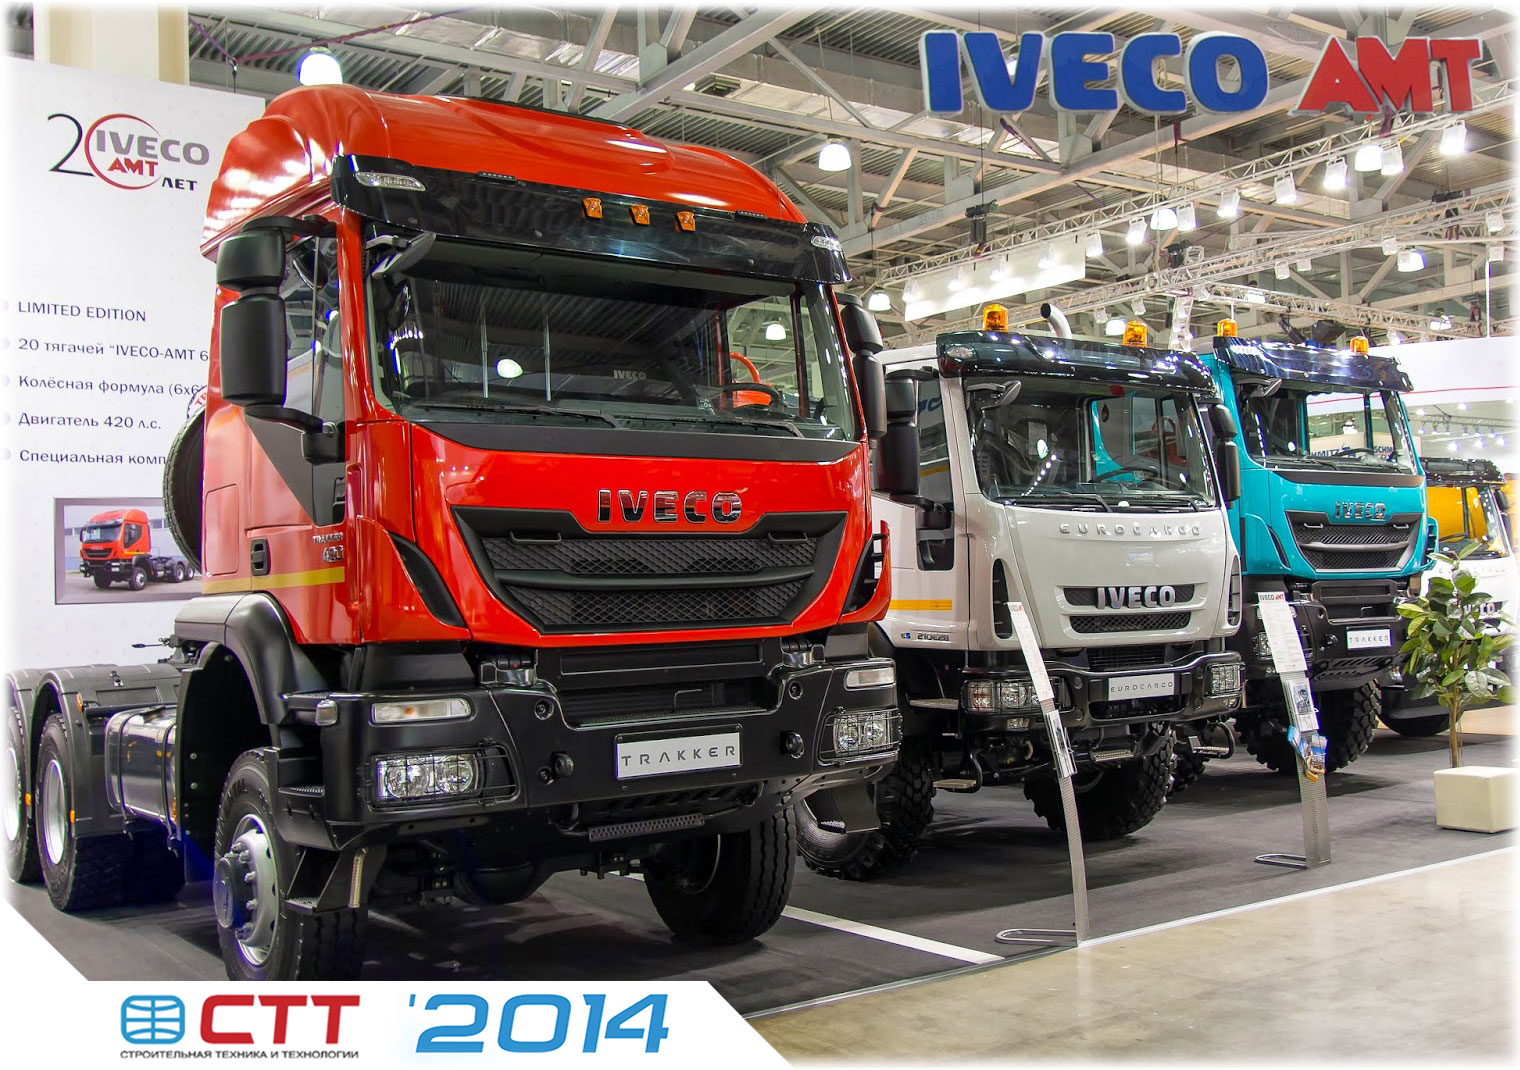 Iveco AMT СТТ 2014